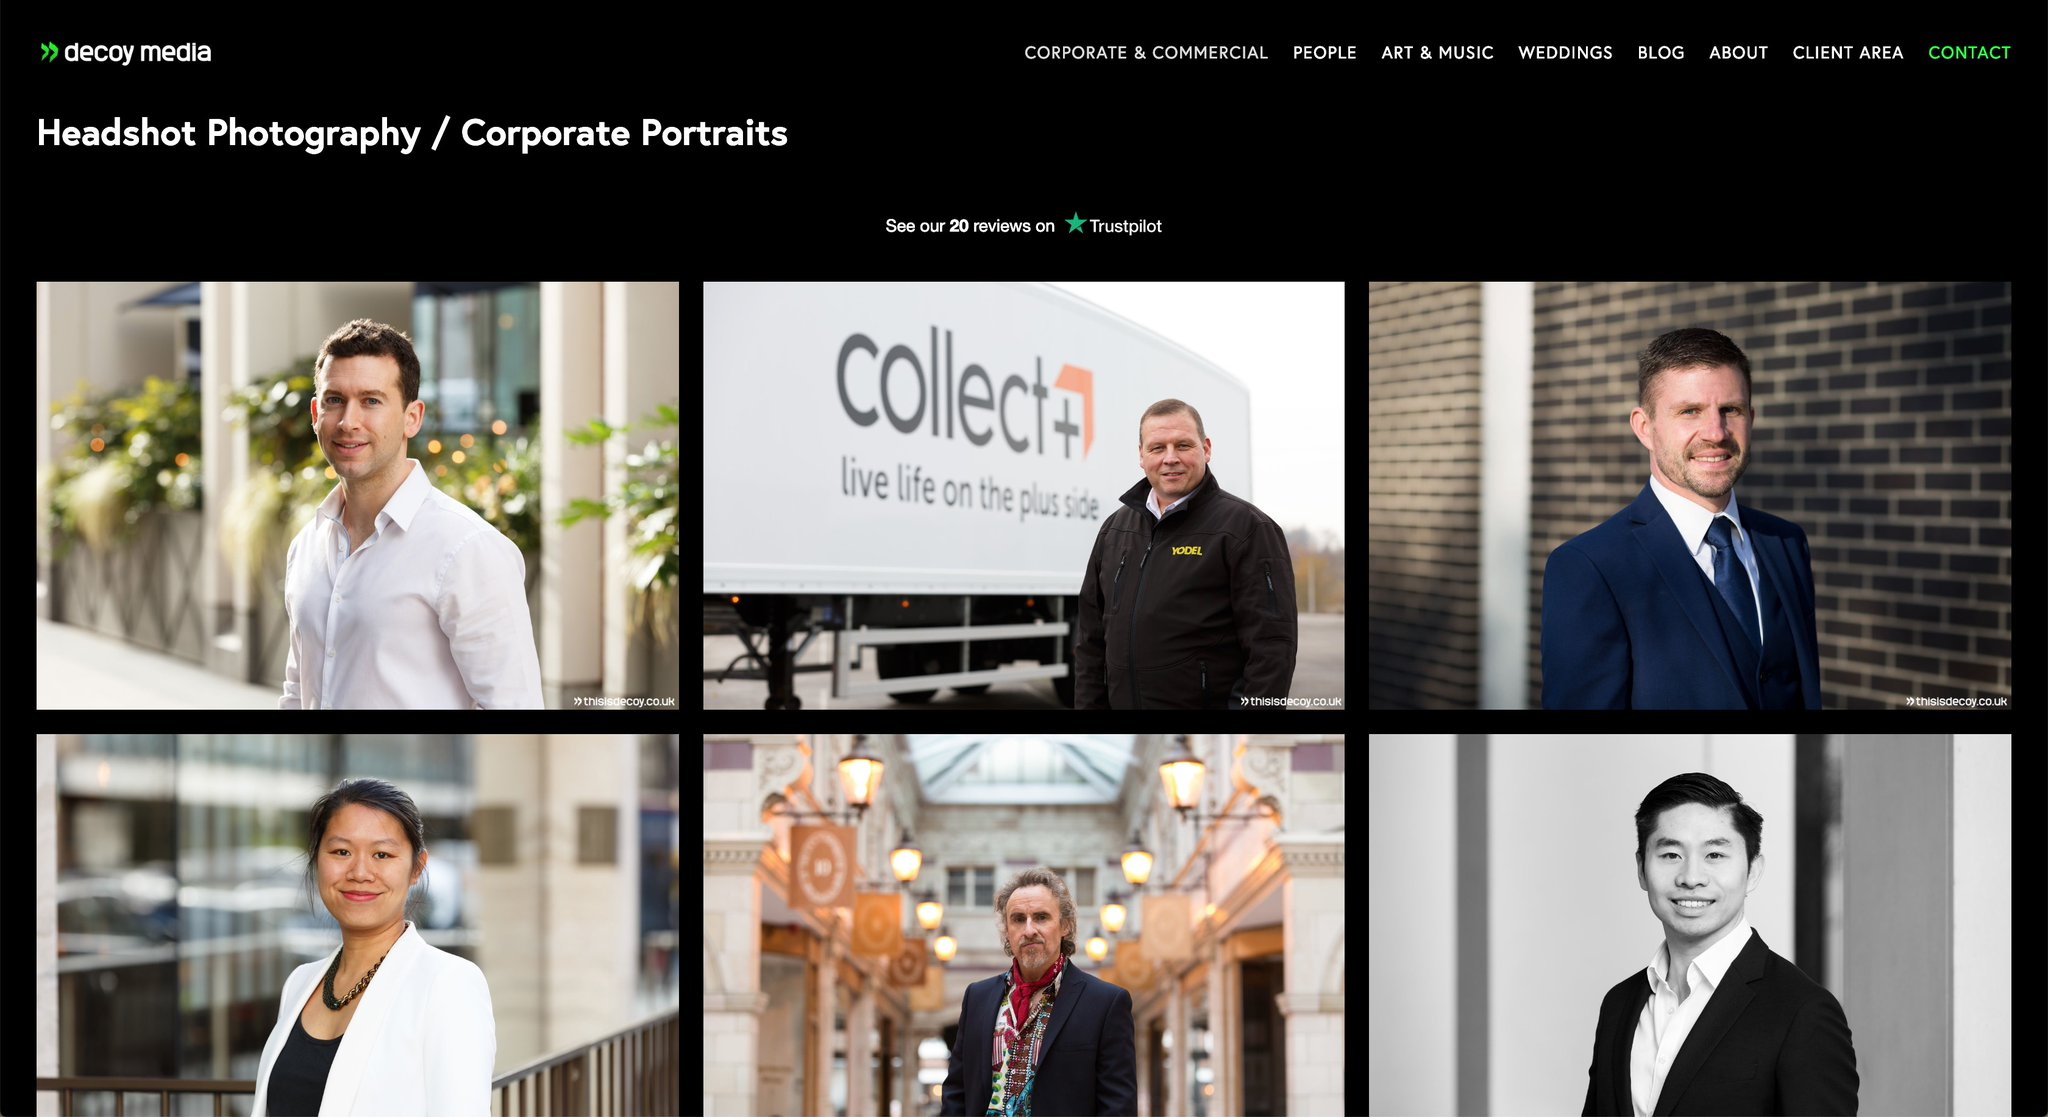 Take a look at our headshot portfolio